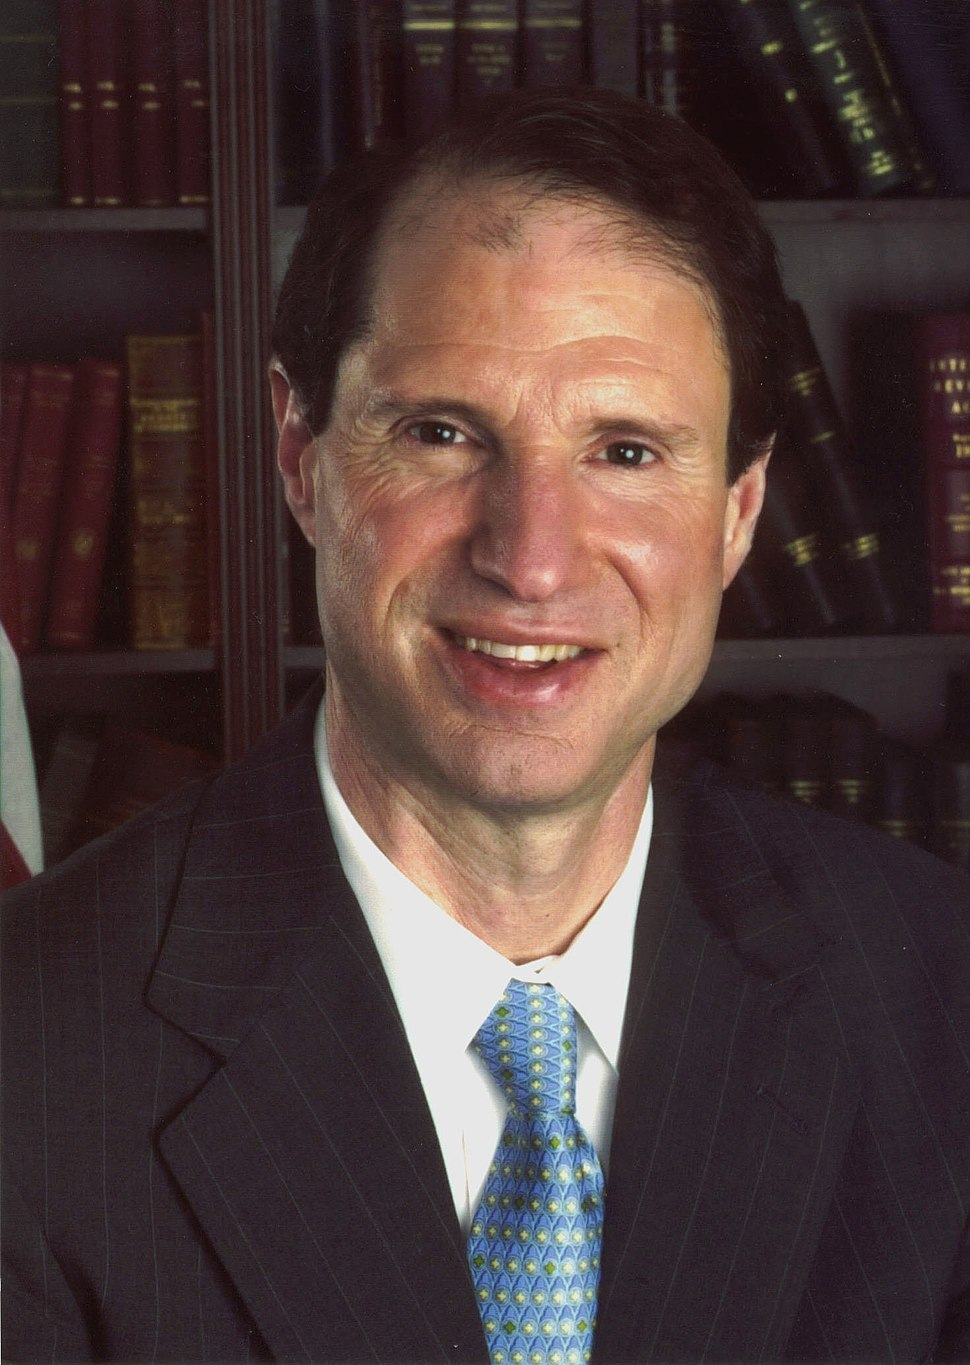 Ron Wyden official portrait